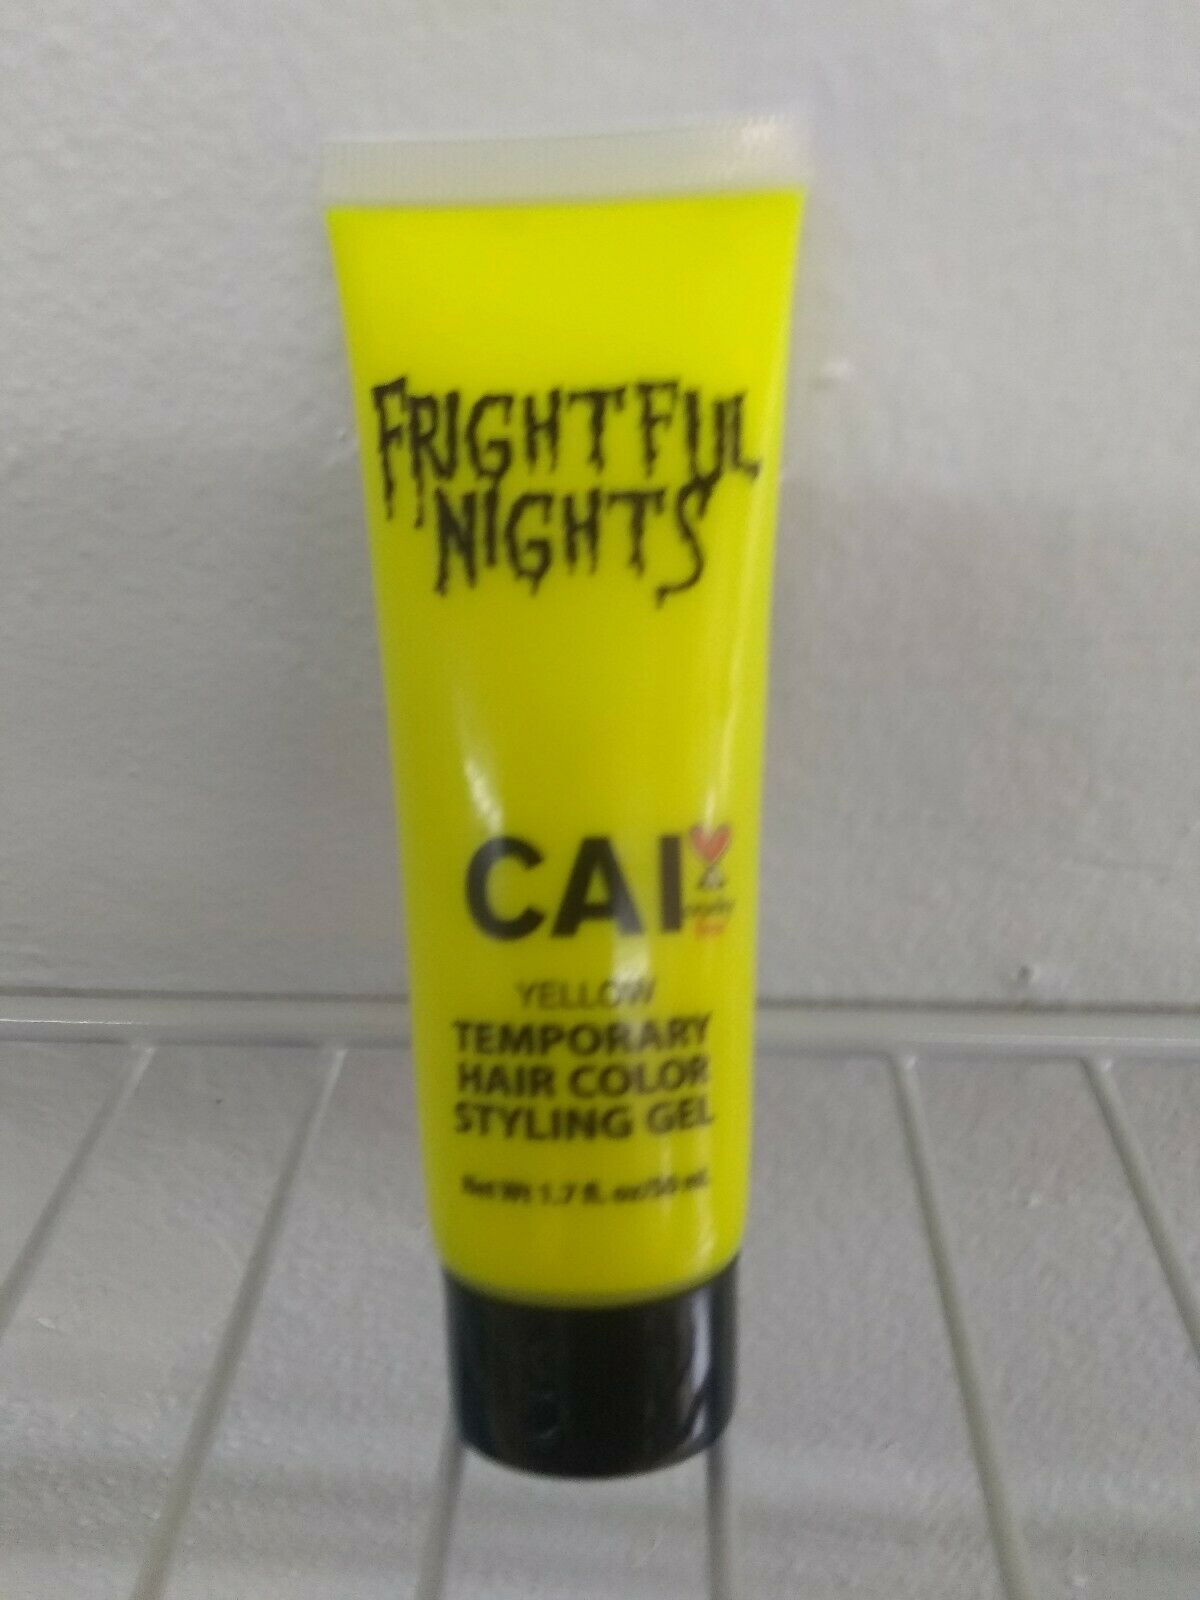 CAI Frightful Nights Temporary Hair Color Styling Gel - Yellow NEW